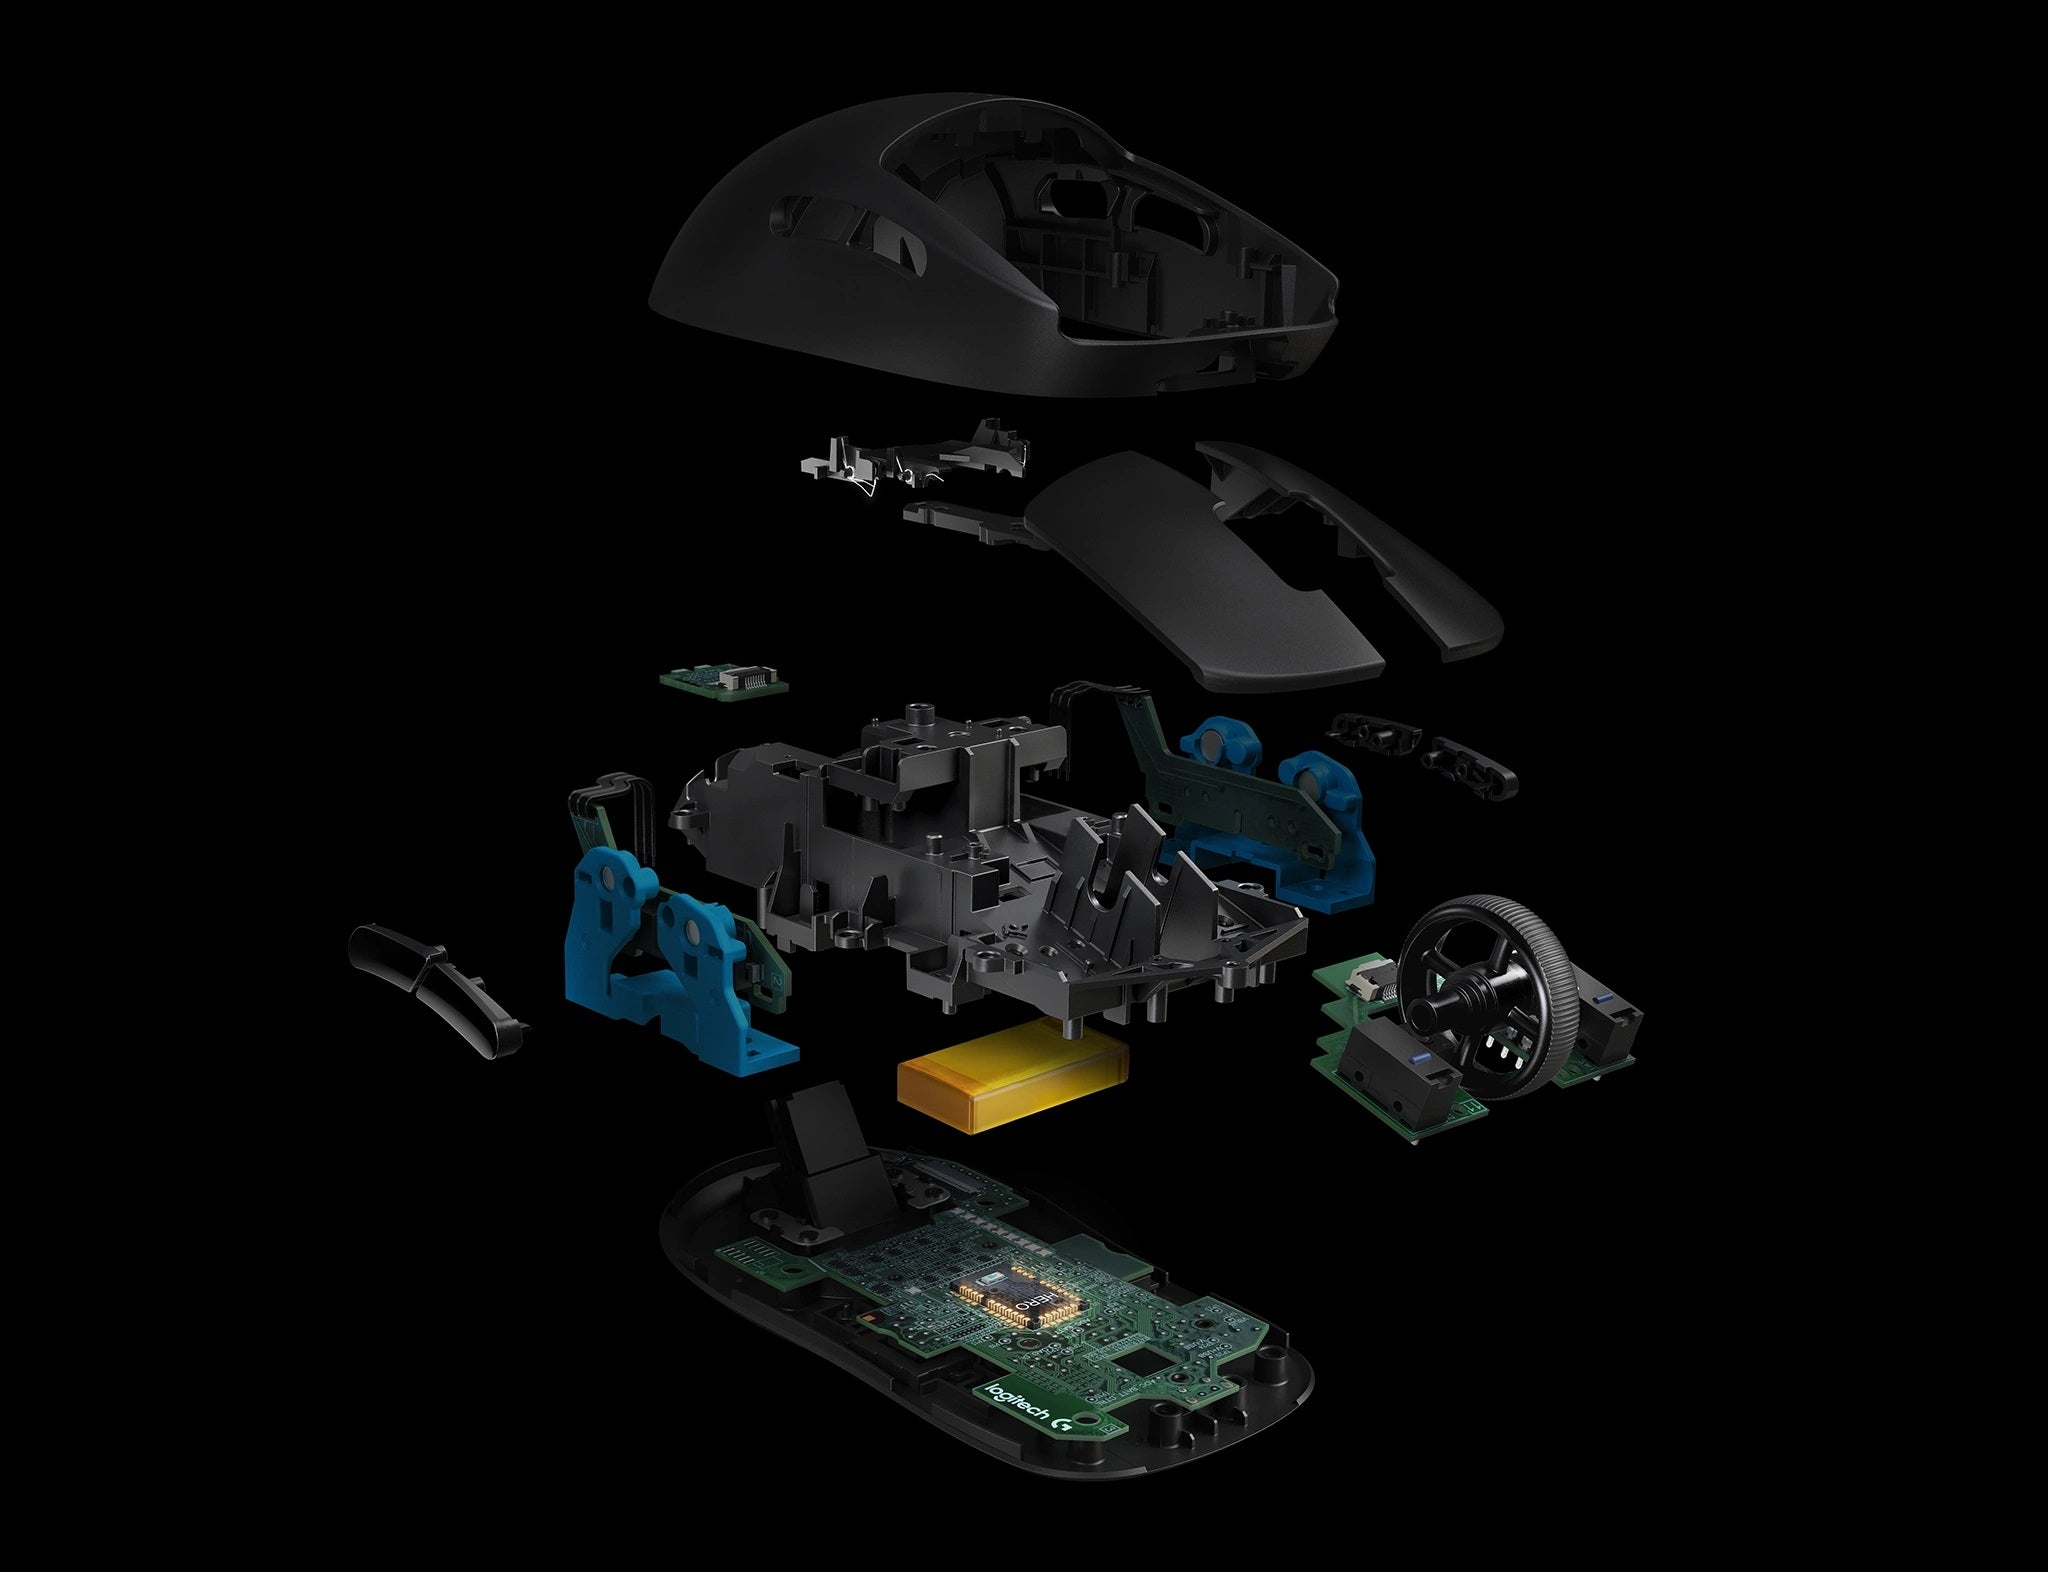 ULTRA LIGHTWEIGHT - The latest endoskeleton design from Logitech G achieves an unreal 80-gram weight. The incredibly thin outer shell, as thin as 1 mm, uses an innovative ladder-chassis design for tournament-ready strength and structural support. The advanced LiPo battery is incredibly long-lasting and lightweight for no-hassles, worry-free wireless gaming. Charge before a tournament and you can forget all about the battery while you compete.